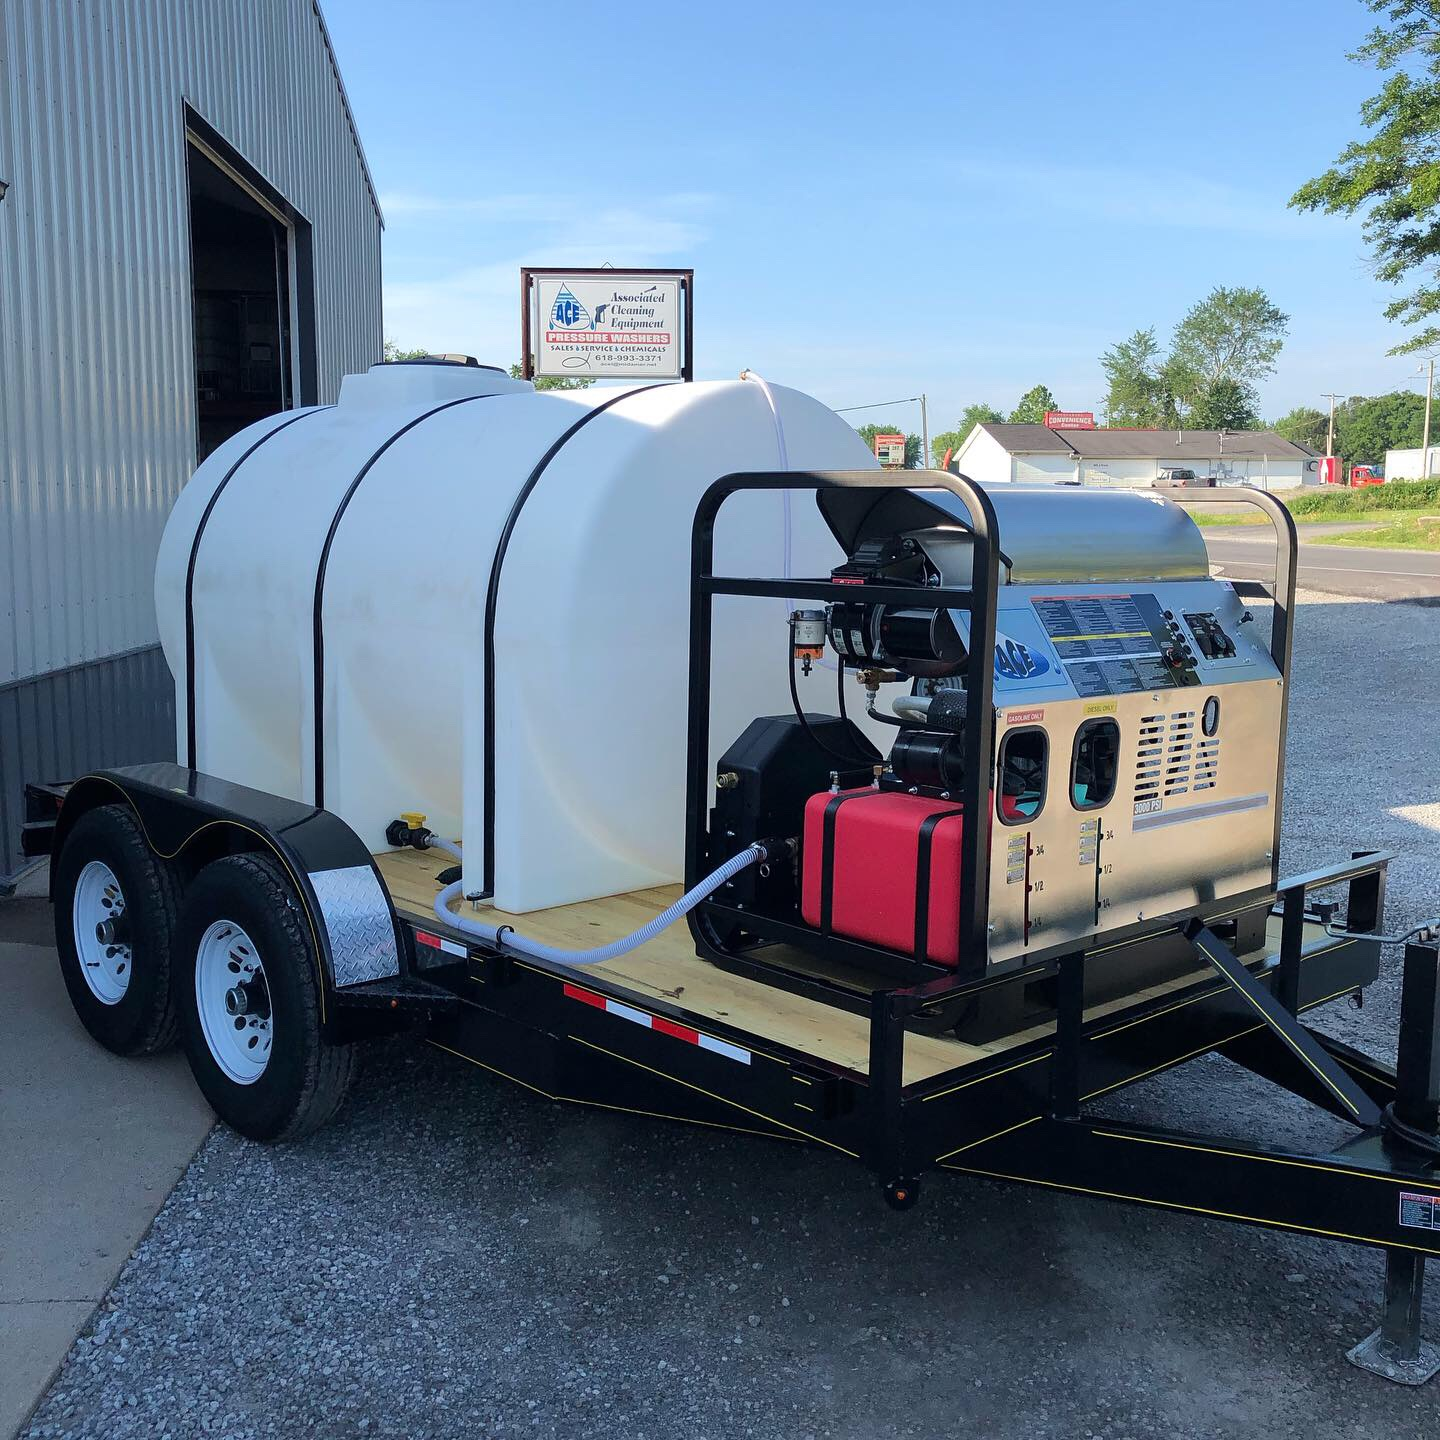 HDS 3008 Hot Water - 3000 PSI @ 8 GPM Hot Water w/ 1000 Gal Tank